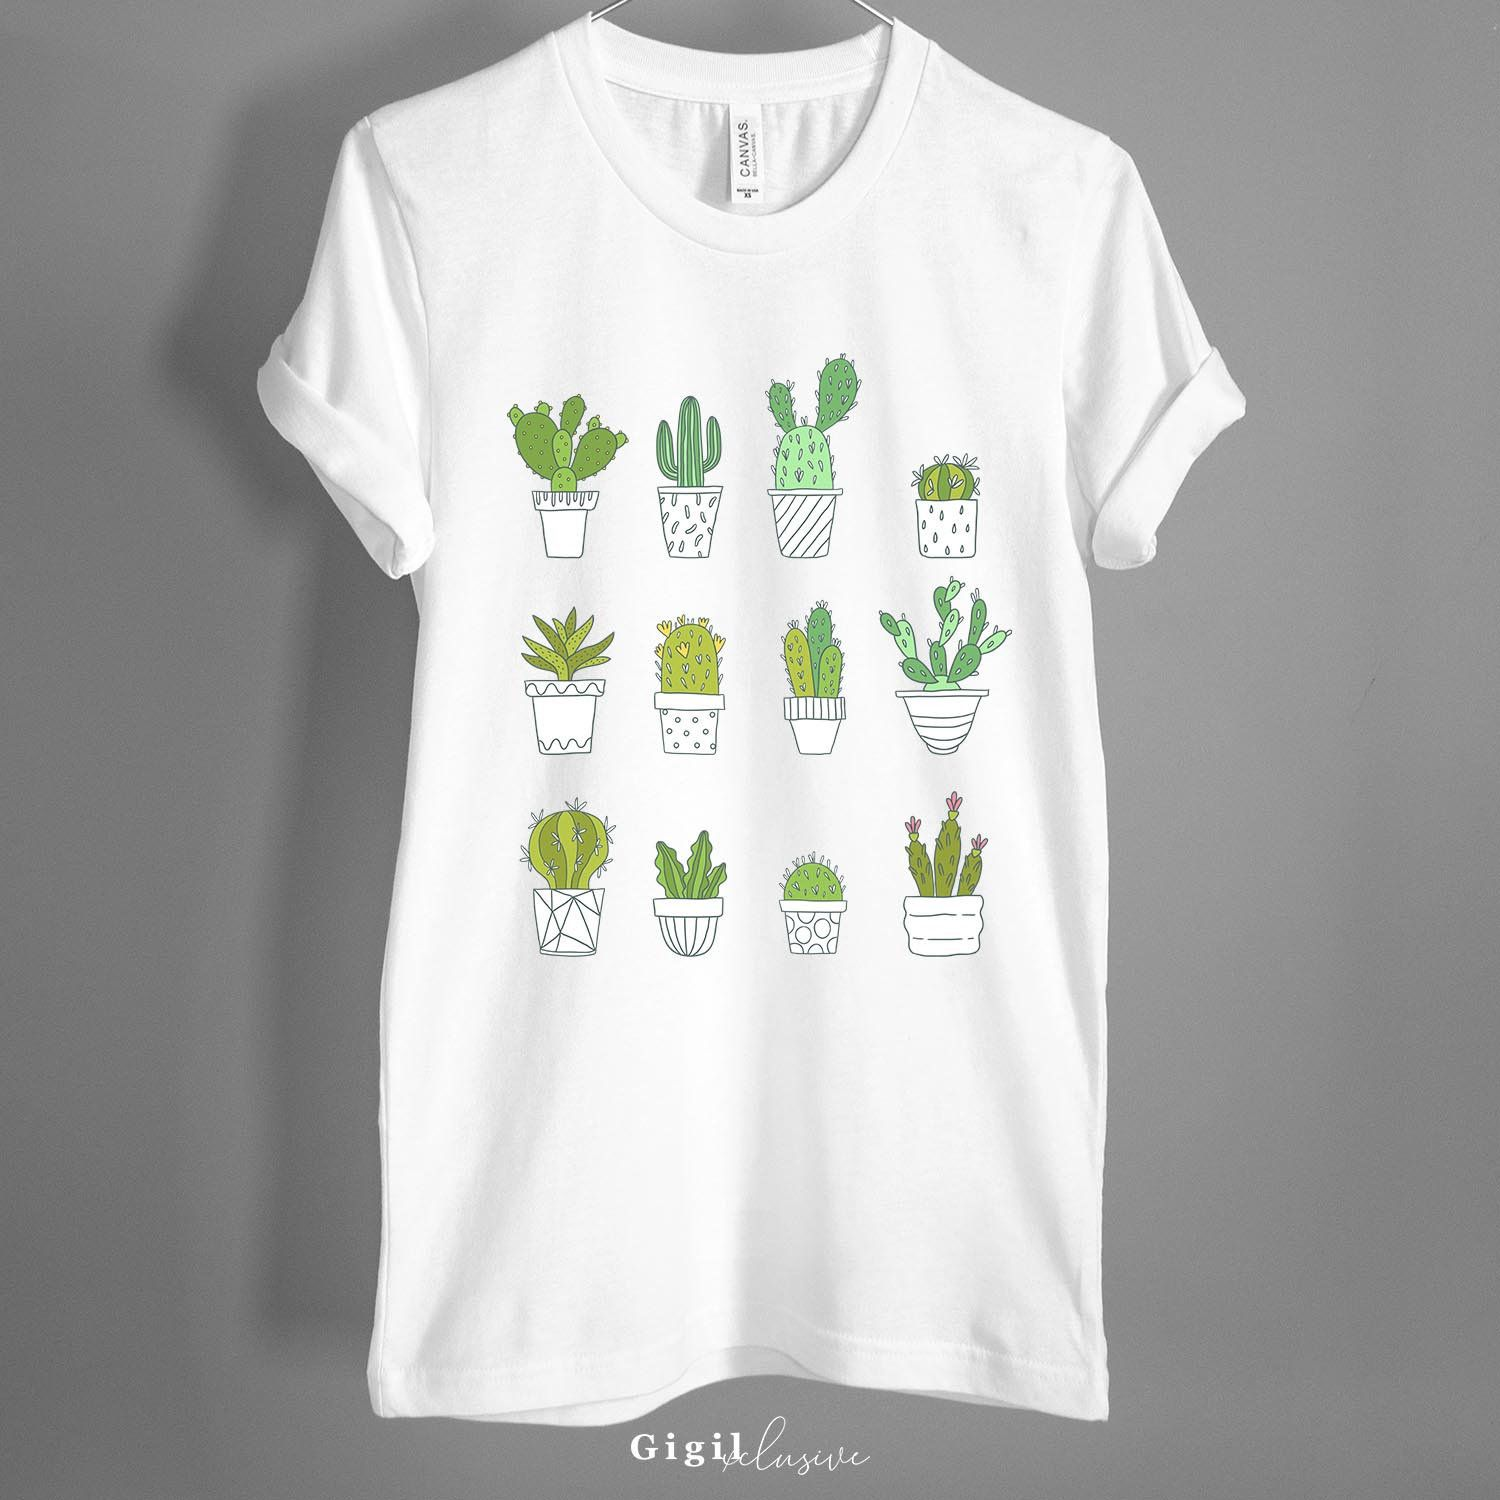 Plants Plant Plant Tee Botanical Graphic Tee House Plant Gift Succulent Plant Lover